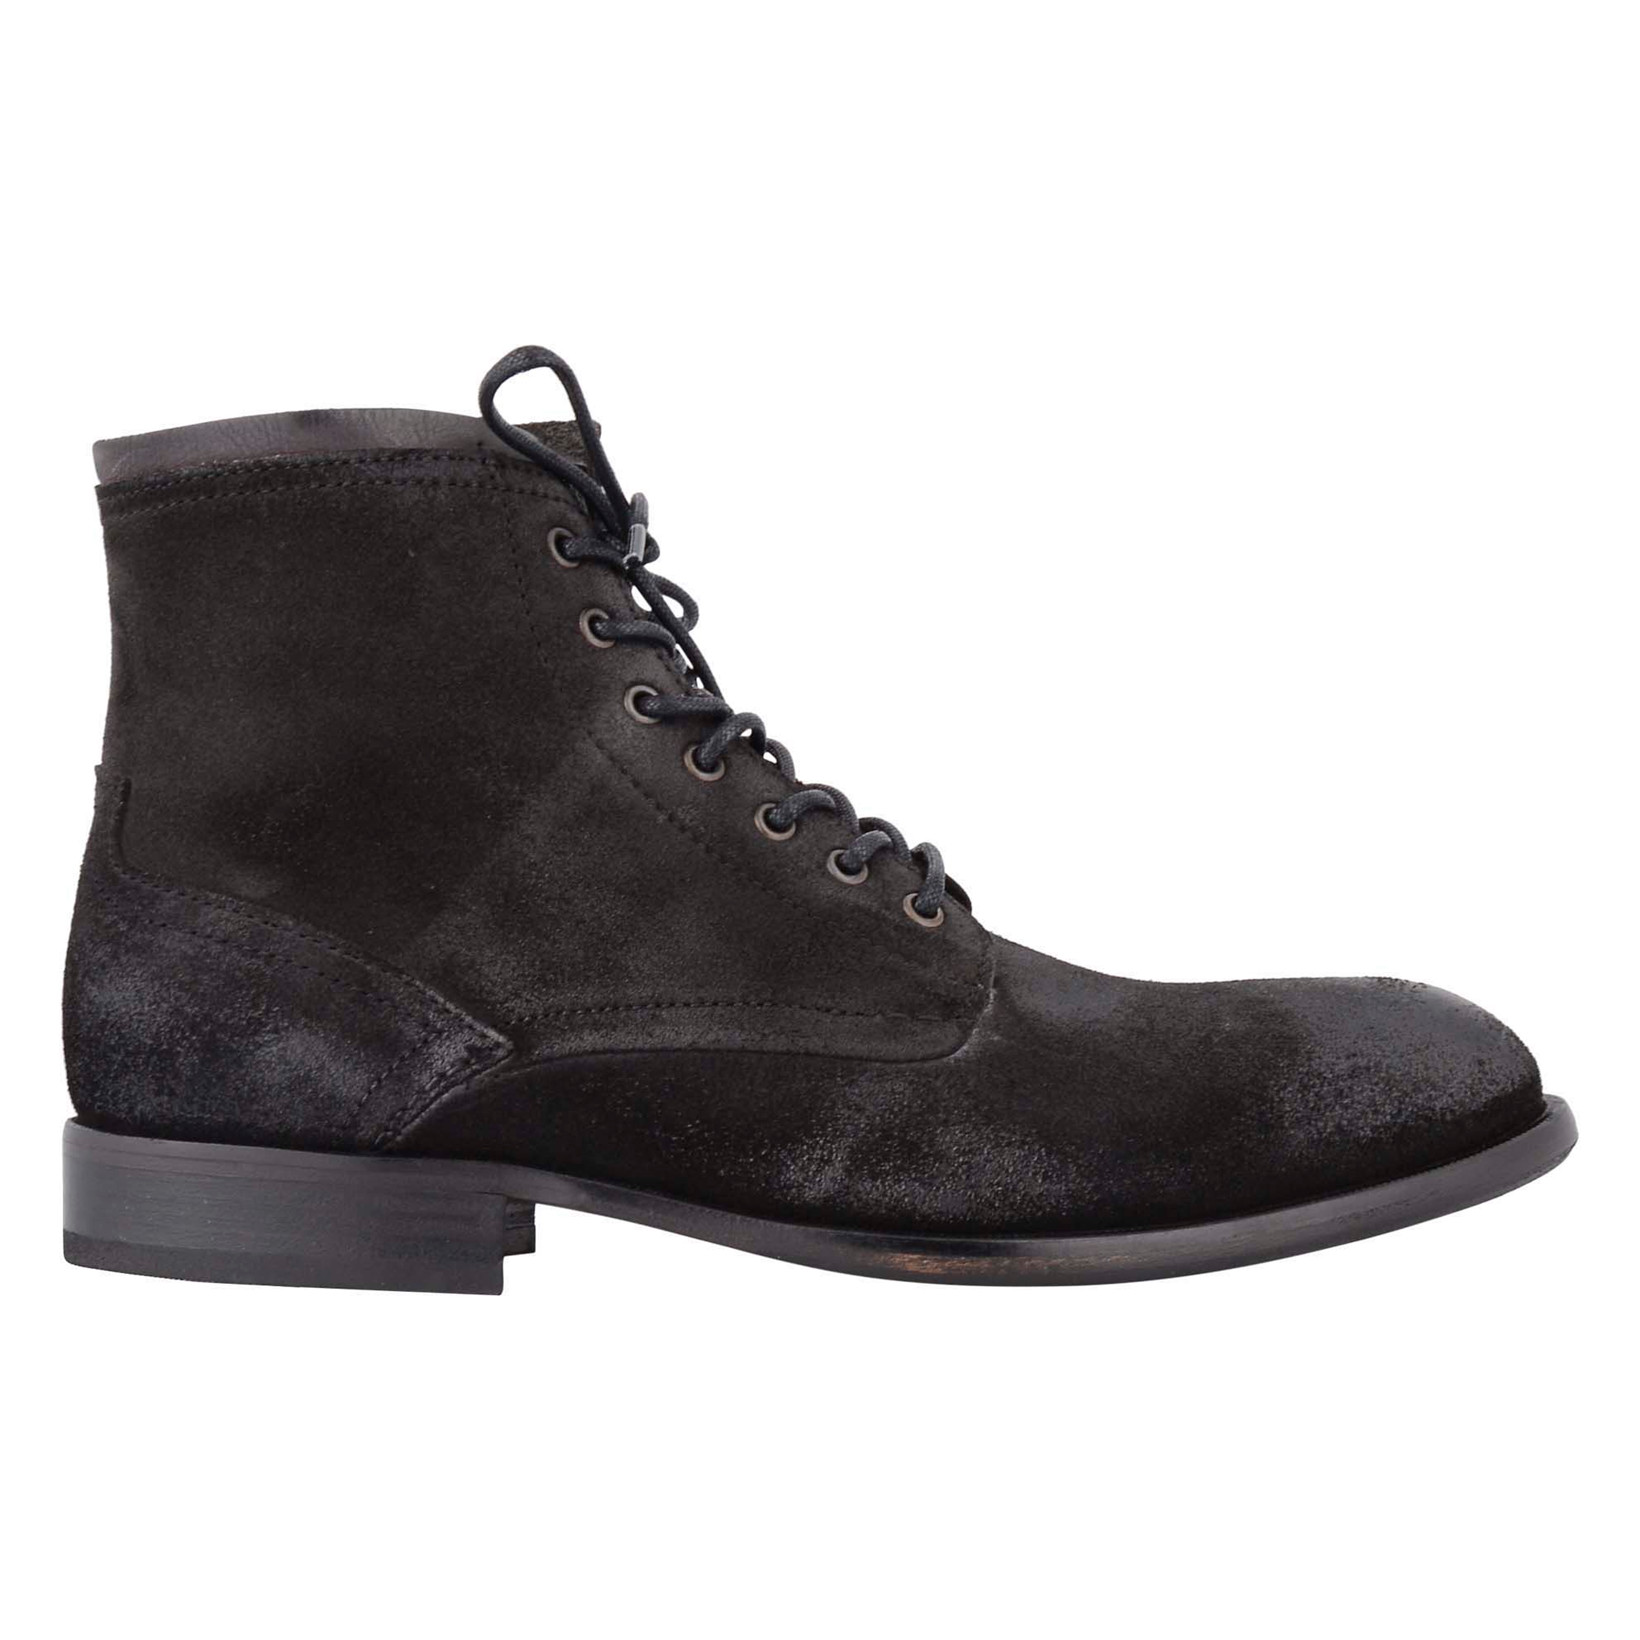 HUDSON RAILTON SUEDE BOOT